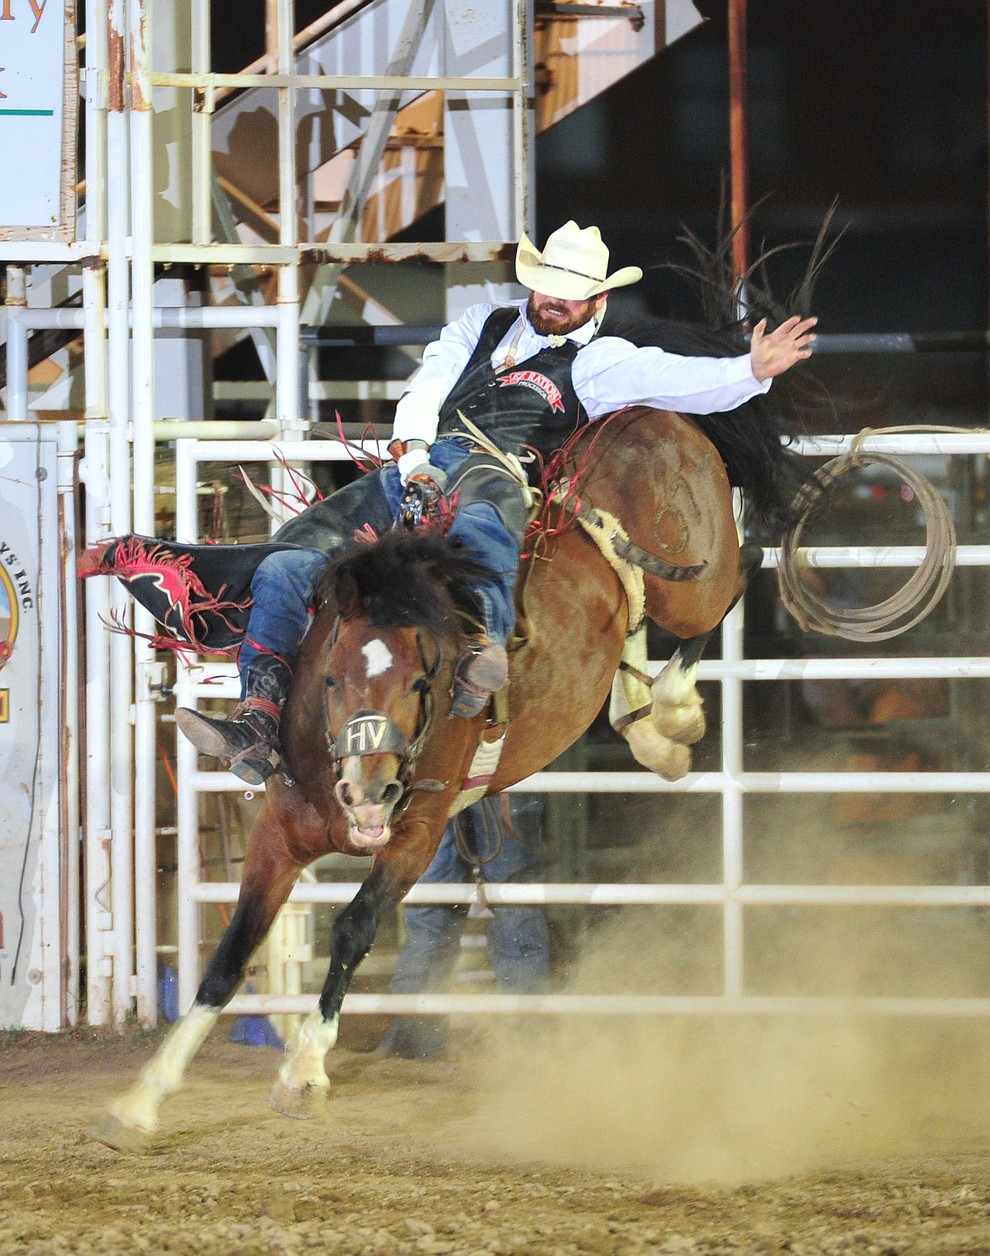 Logan Patterson scores 78 on Hot Valley in the bareback during the 5th performance of the Prescott Frontier Days Rodeo Sunday, July 1, 2018. (Les Stukenberg/Courier)